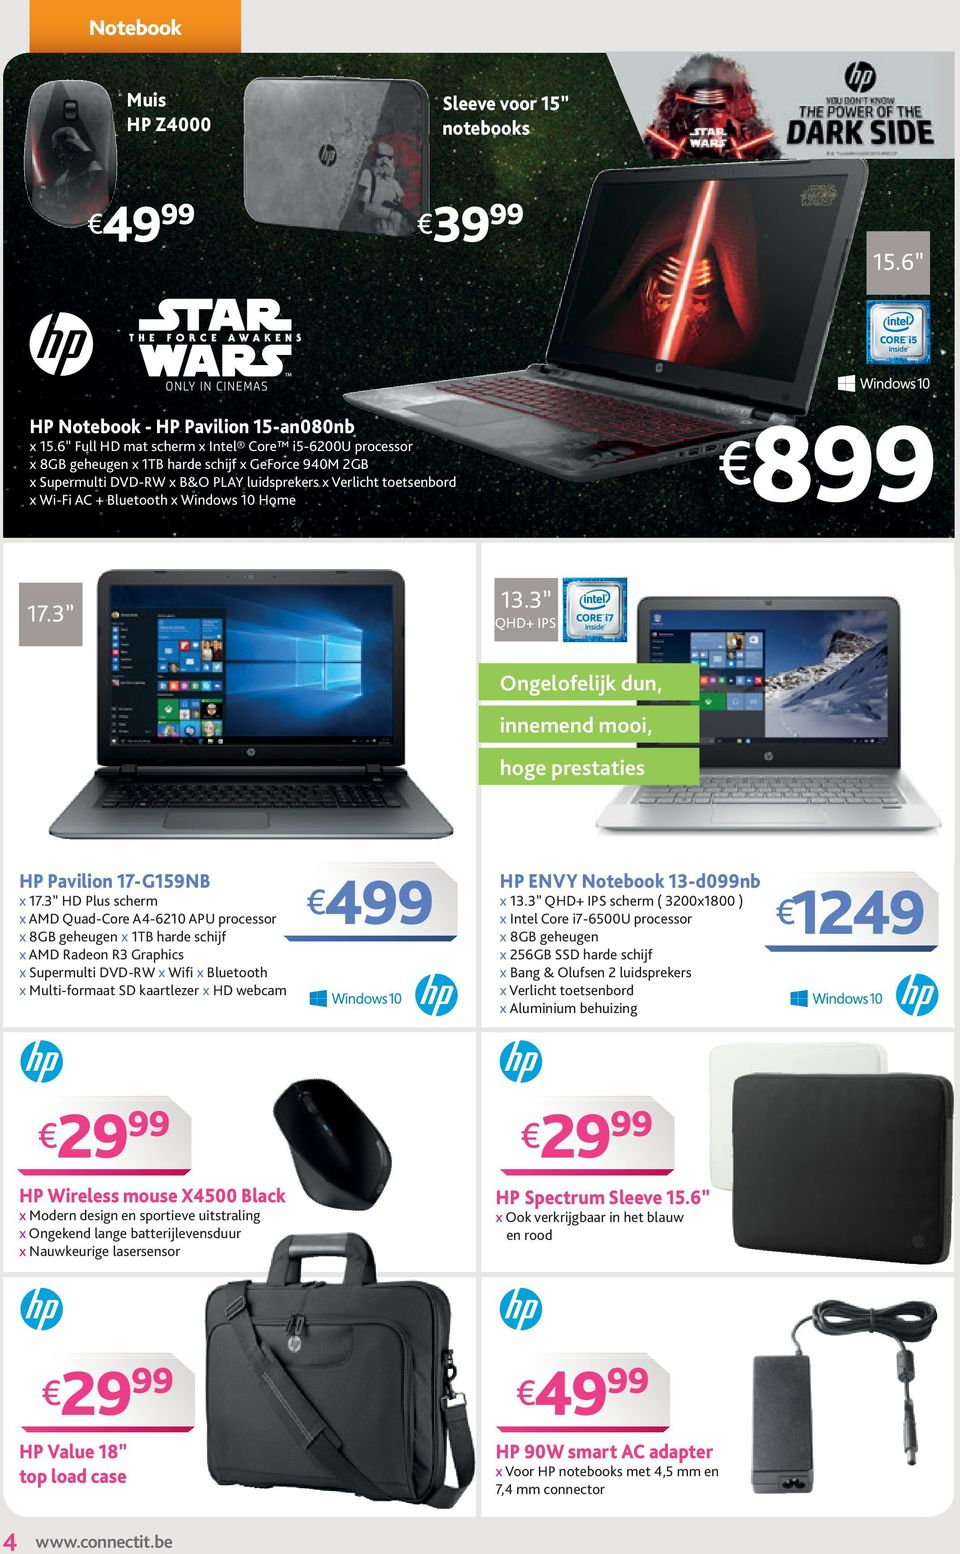 Windows 10 Home 8 17.3 13.3 QHD+ IPS Ongelofelijk dun, innemend mooi, hoge prestaties HP Pavilion 17-G159NB x 17.